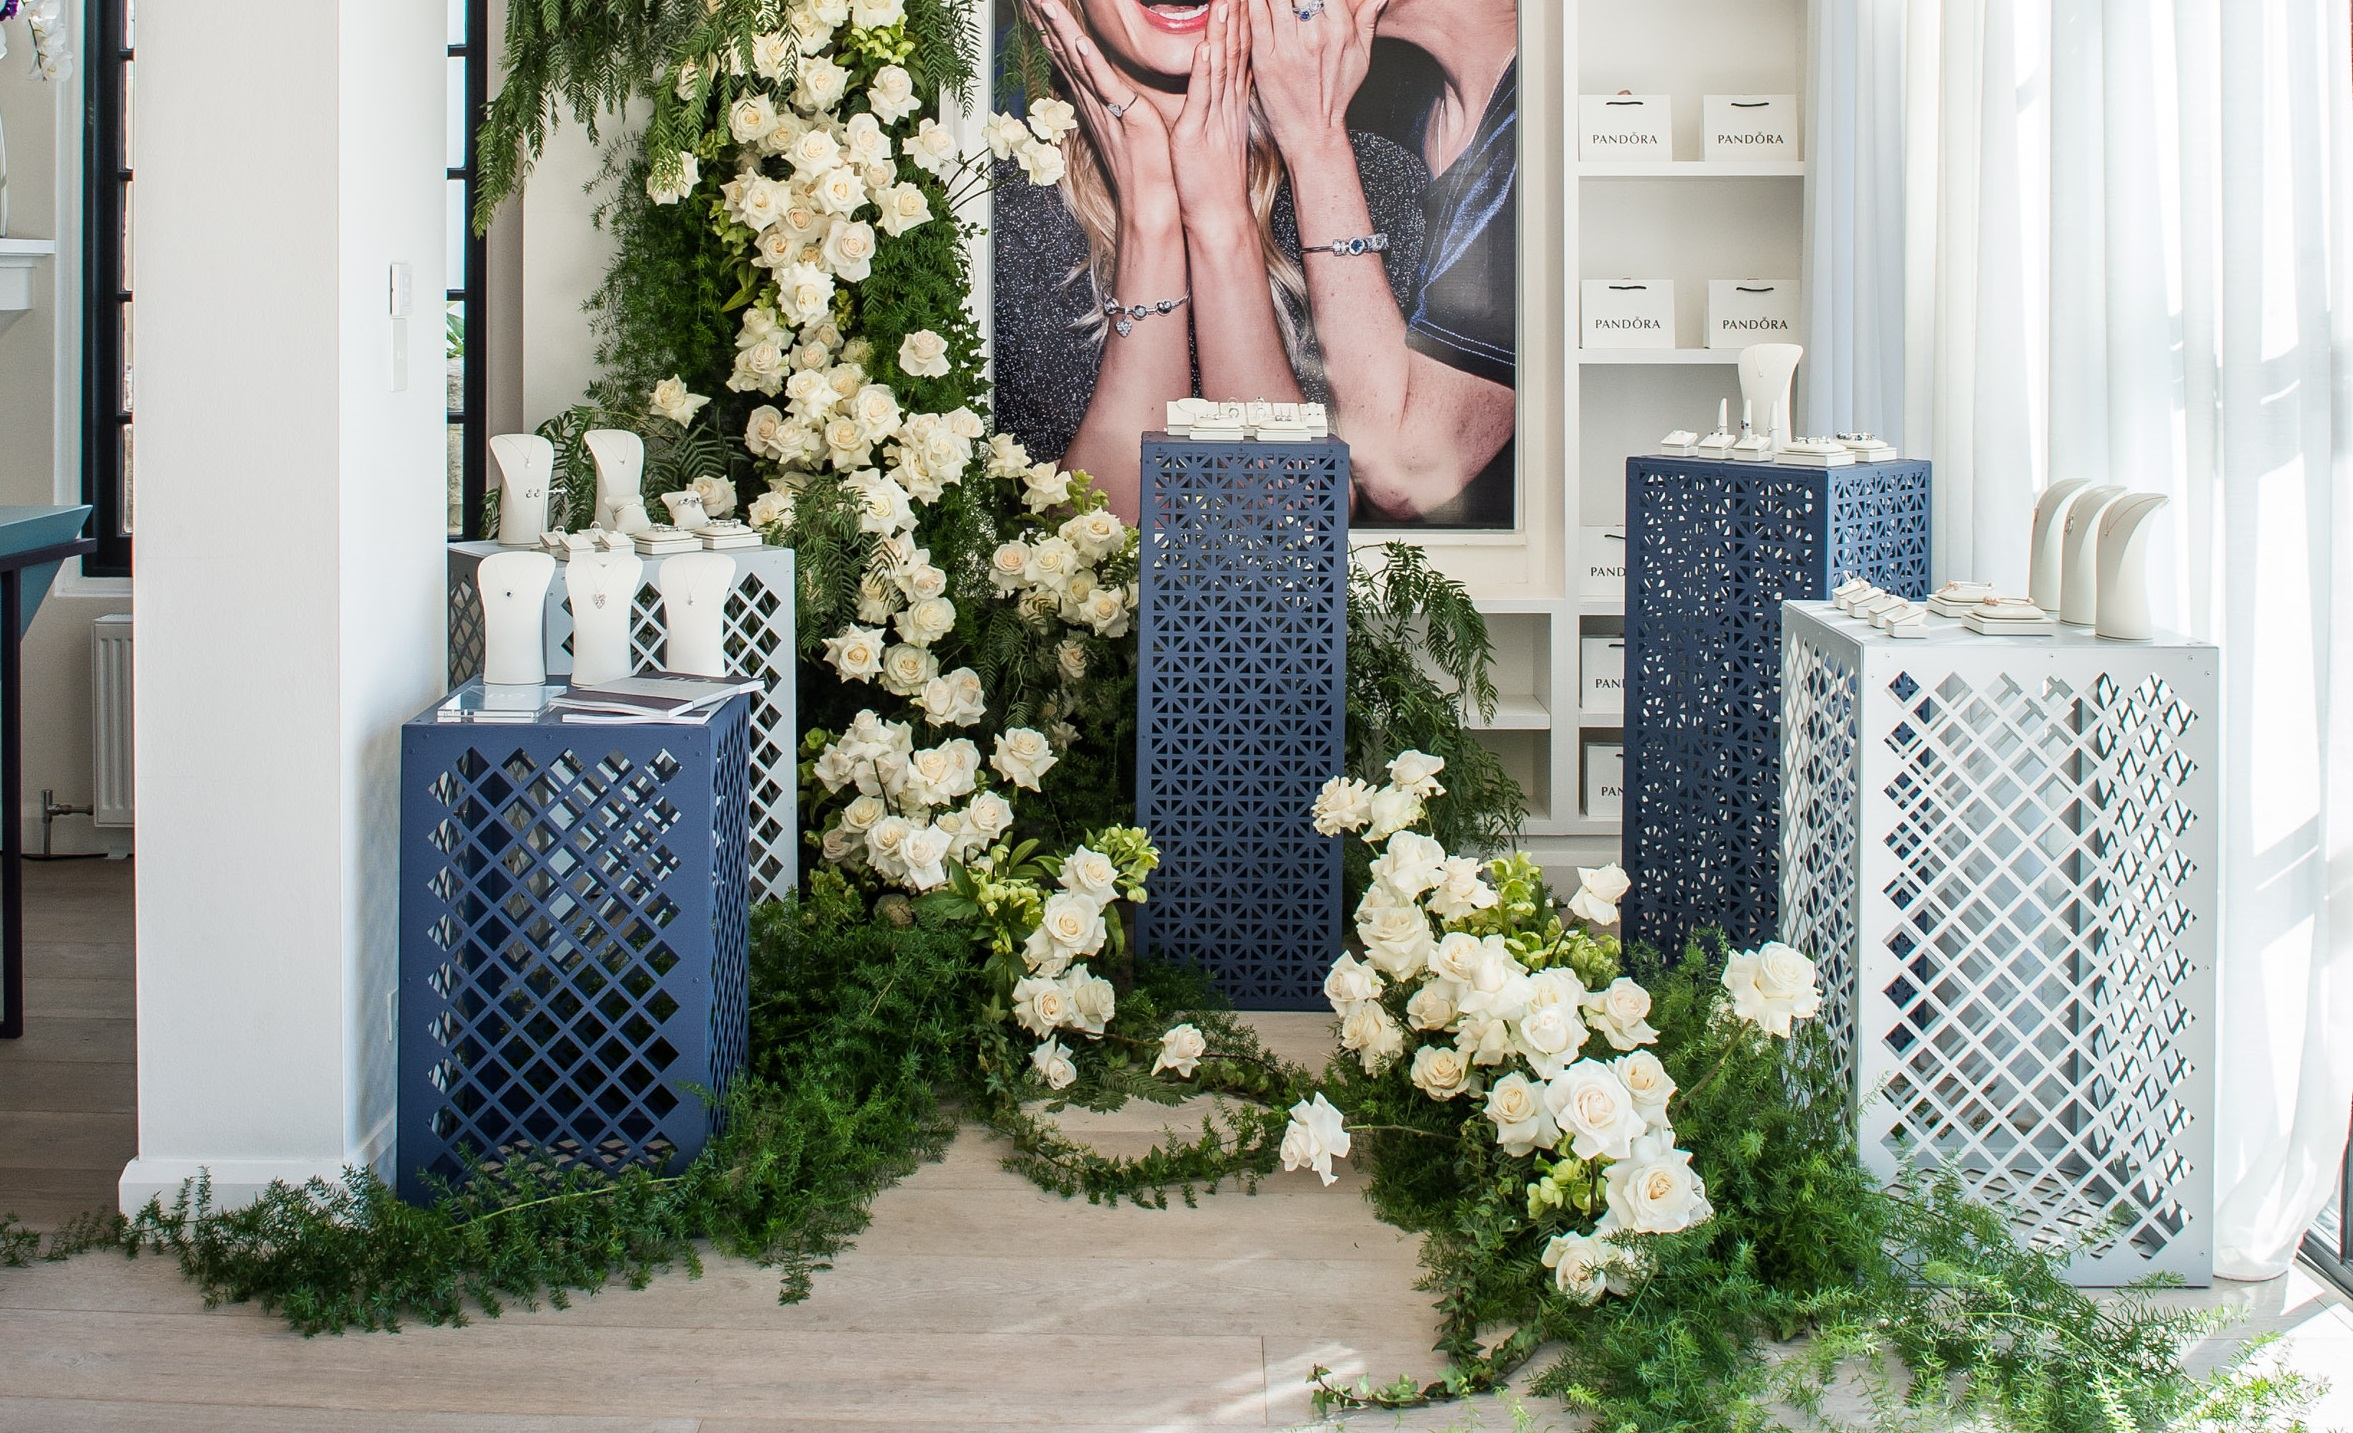 Triangle perforated metal - Pandora Launch event display